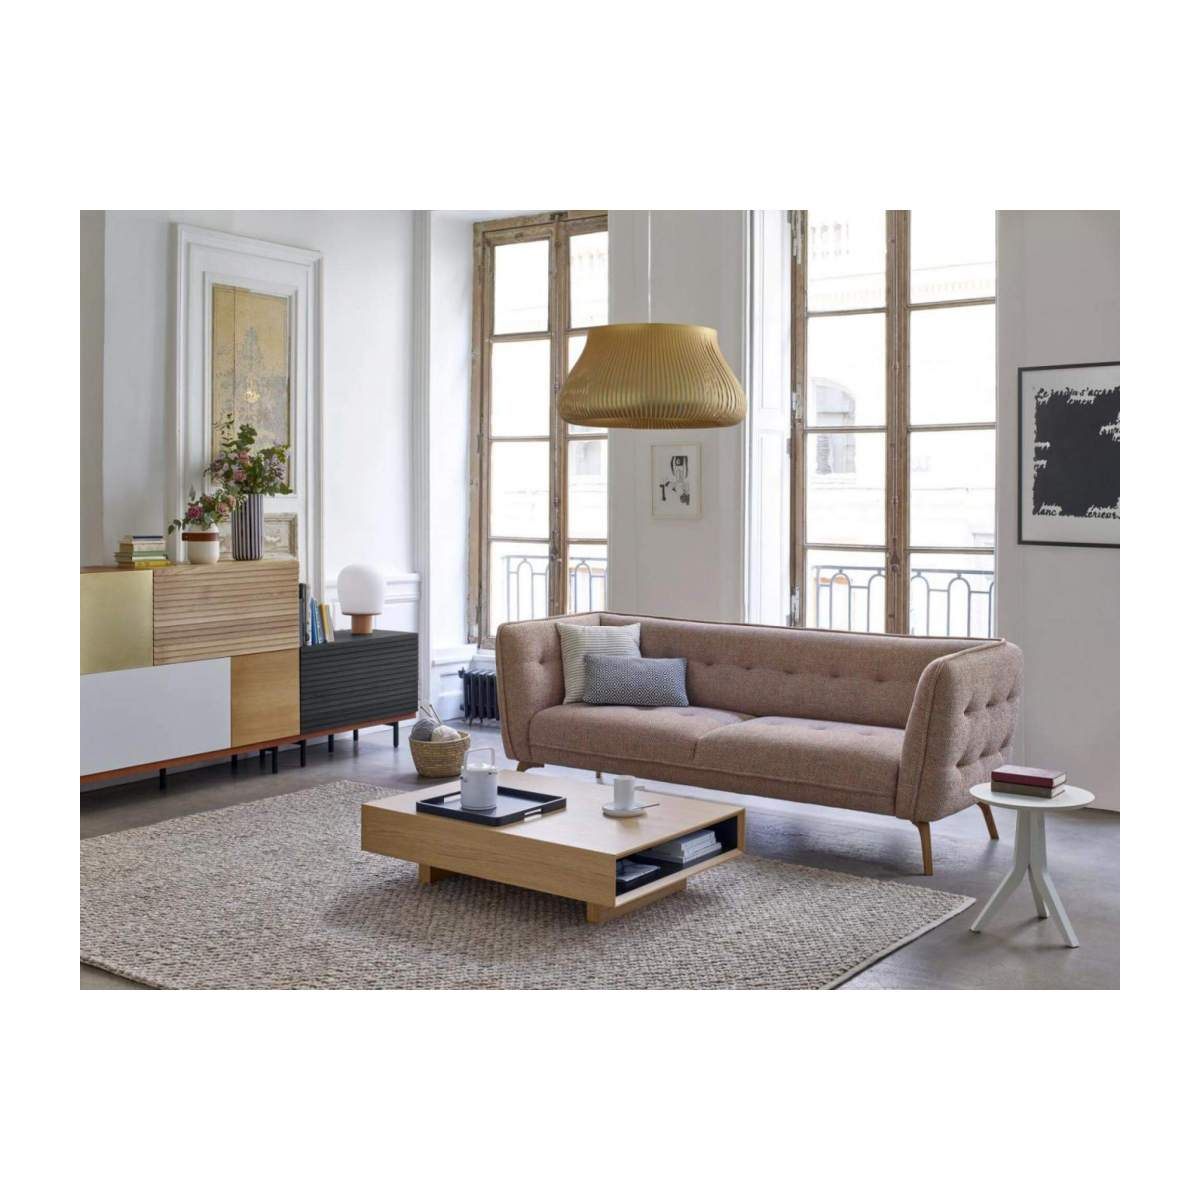 2 seater sofa in Lecce fabric, muscat and natural oak feet n°4